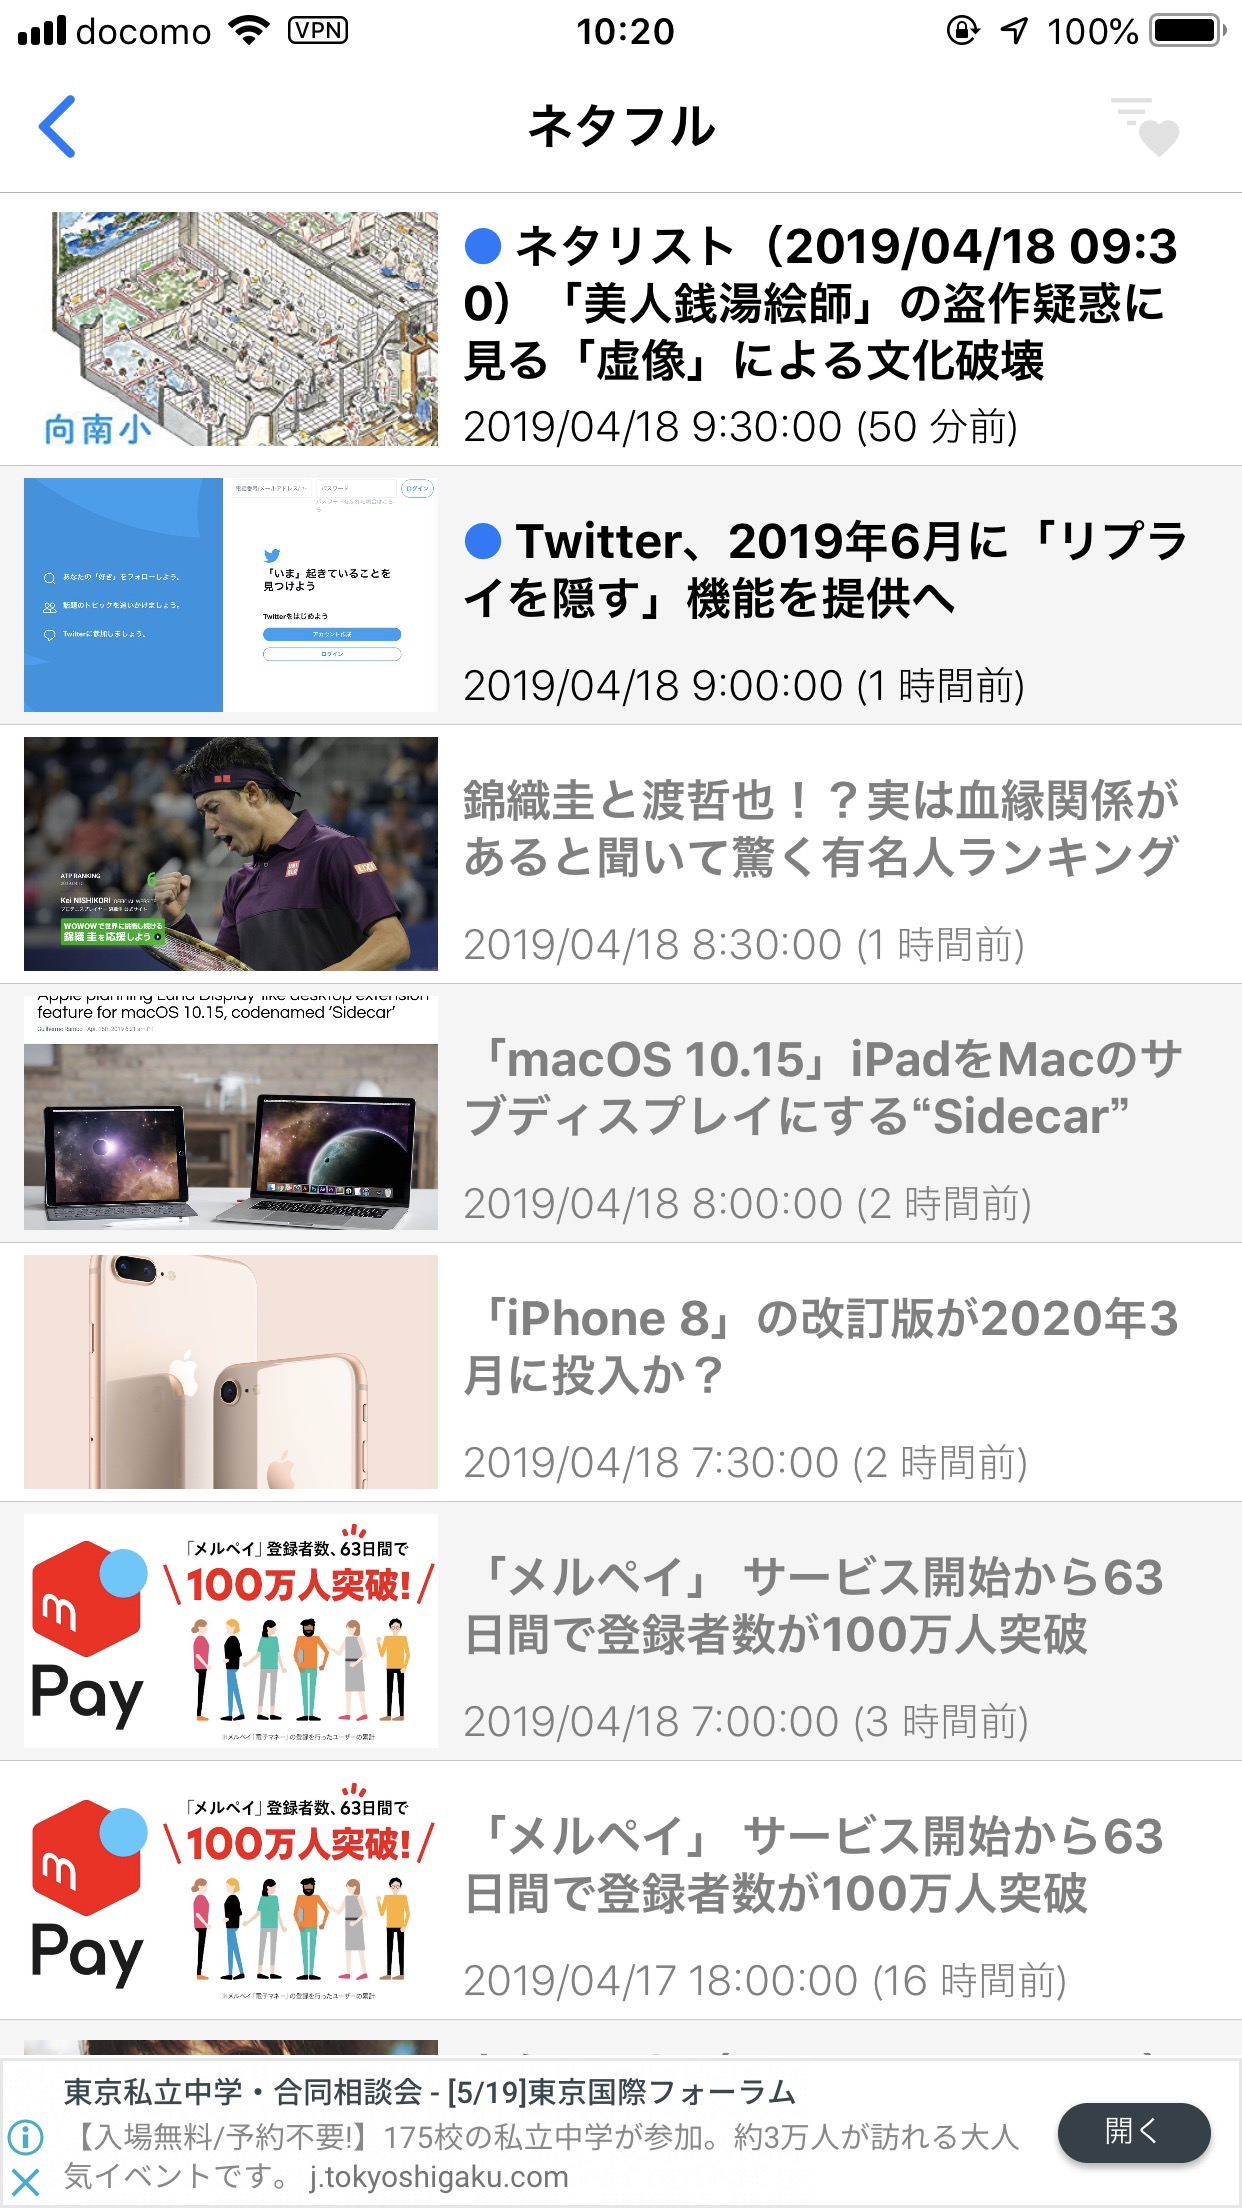 iPhoneアプリRSSリーダー「Simple RSS Reader」 4